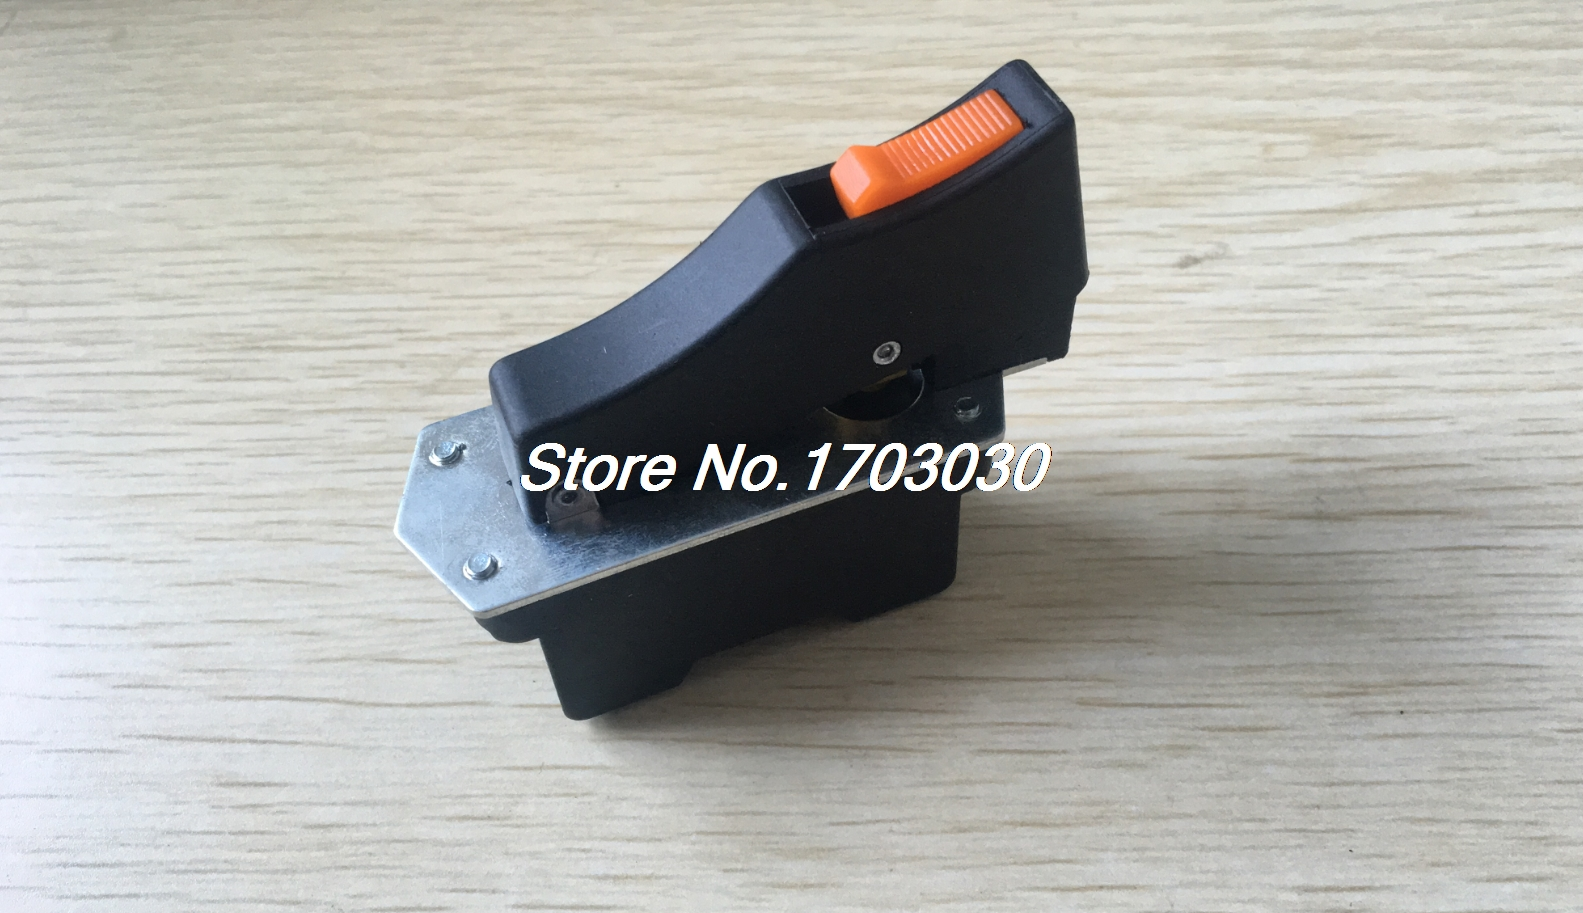 Cut off Machine off Lock Button Trigger Switch AC 250V 10A FA5-10/2W fa4 10 2db 10a 250v 5e4 power tool replacement dpst no lock on trigger switch mitre saw cutting machine 355 350 color randomly